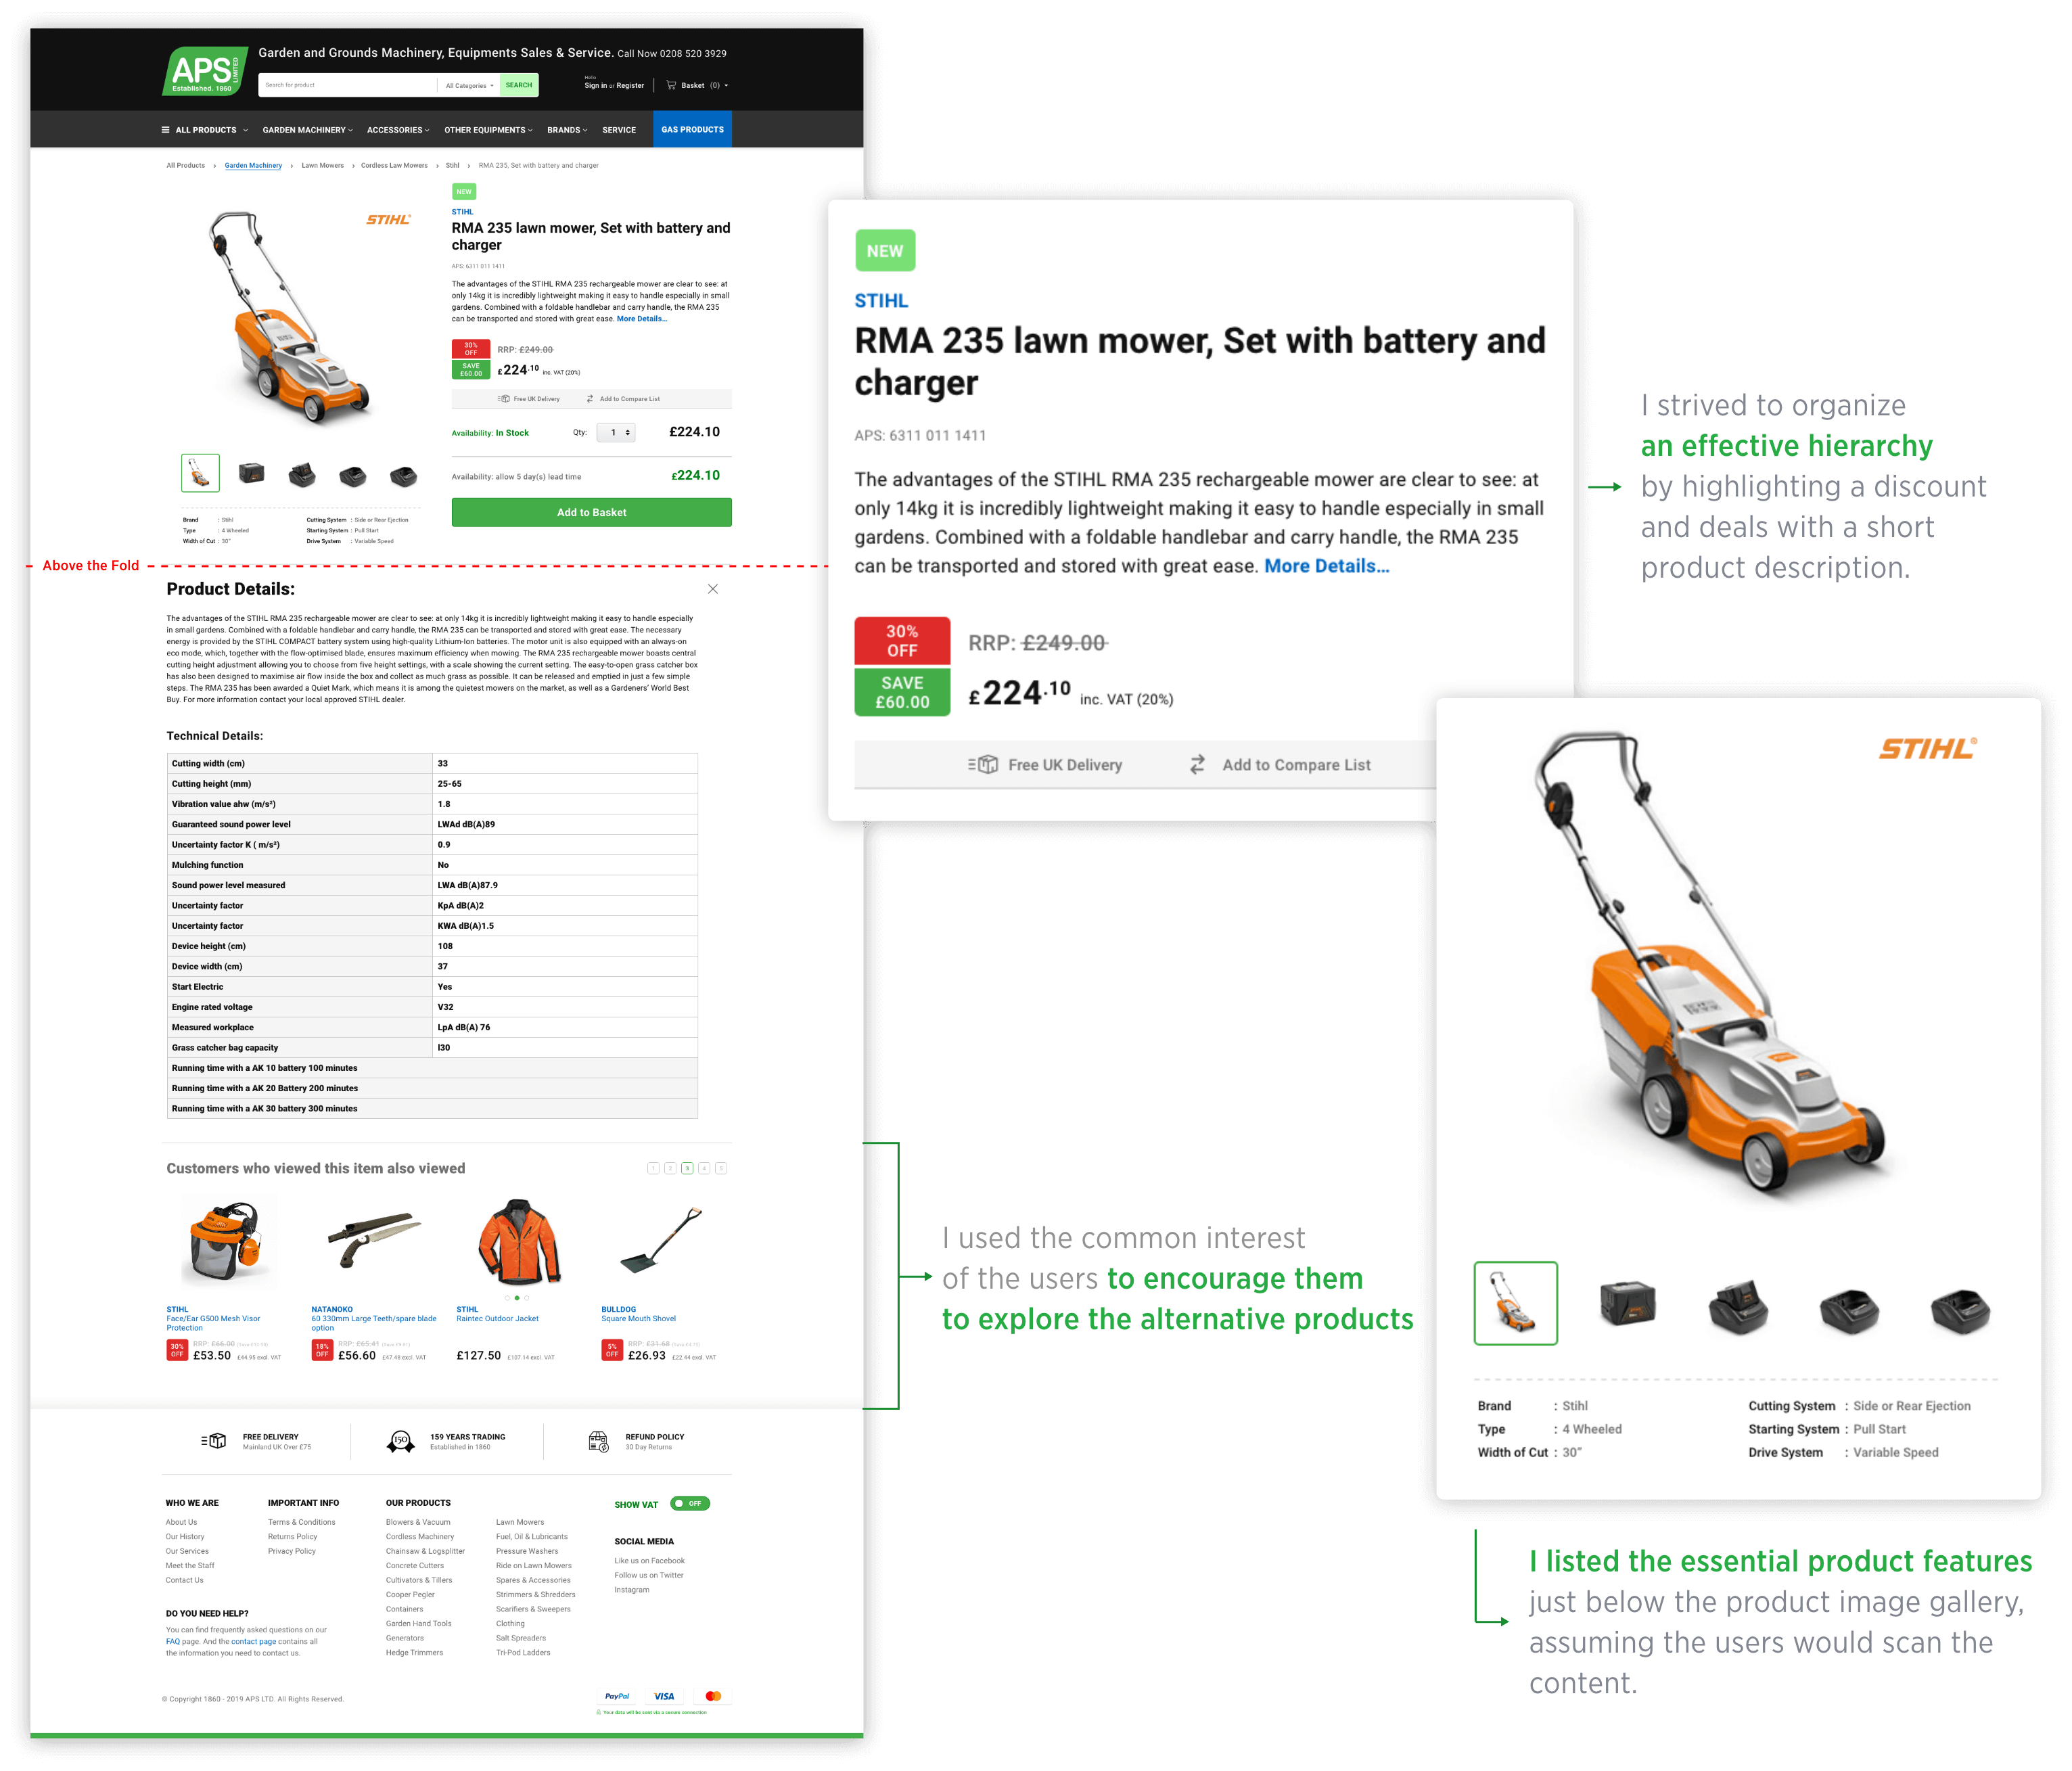 Product Detail Page of APS Website